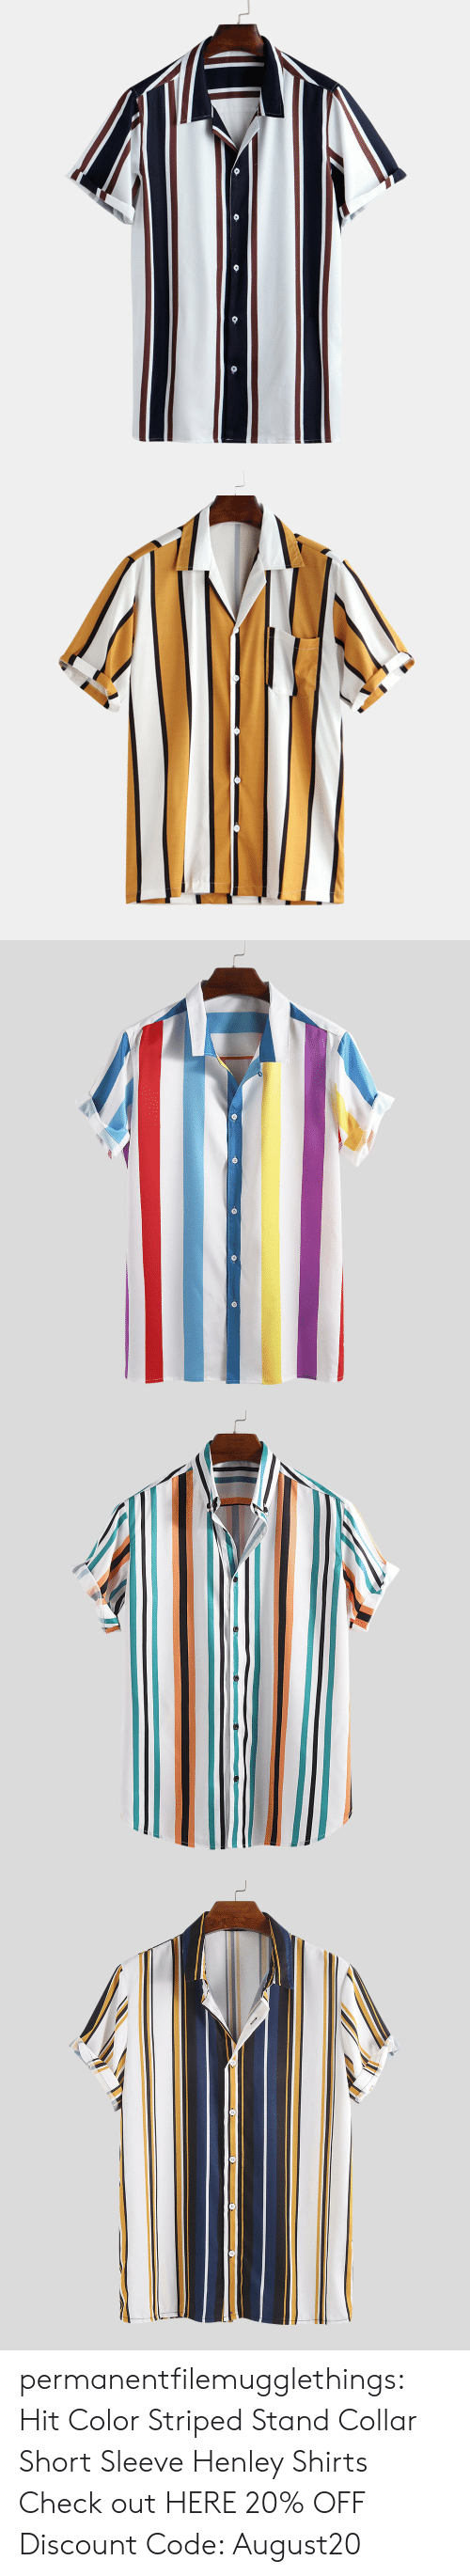 Tumblr, Blog, and Com: permanentfilemugglethings: Hit Color Striped Stand Collar Short Sleeve Henley Shirts Check out HERE 20% OFF Discount Code: August20